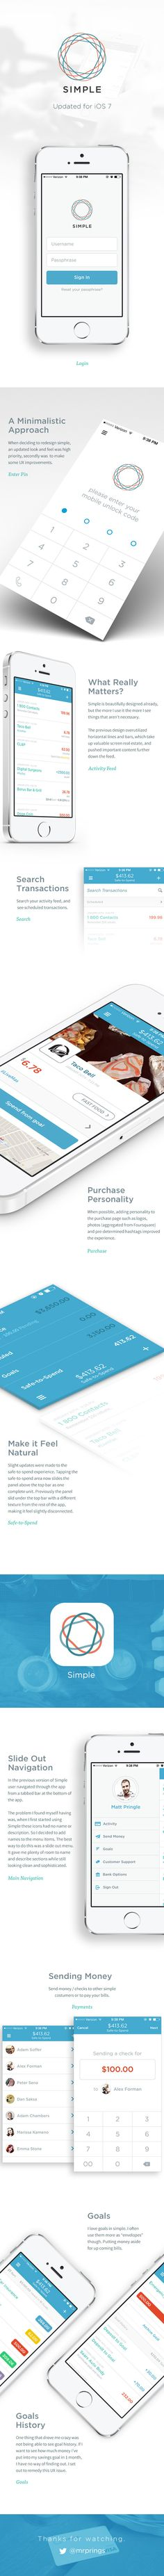 Simple. Updated for iOS 7 by Matt Pringle, via Behance